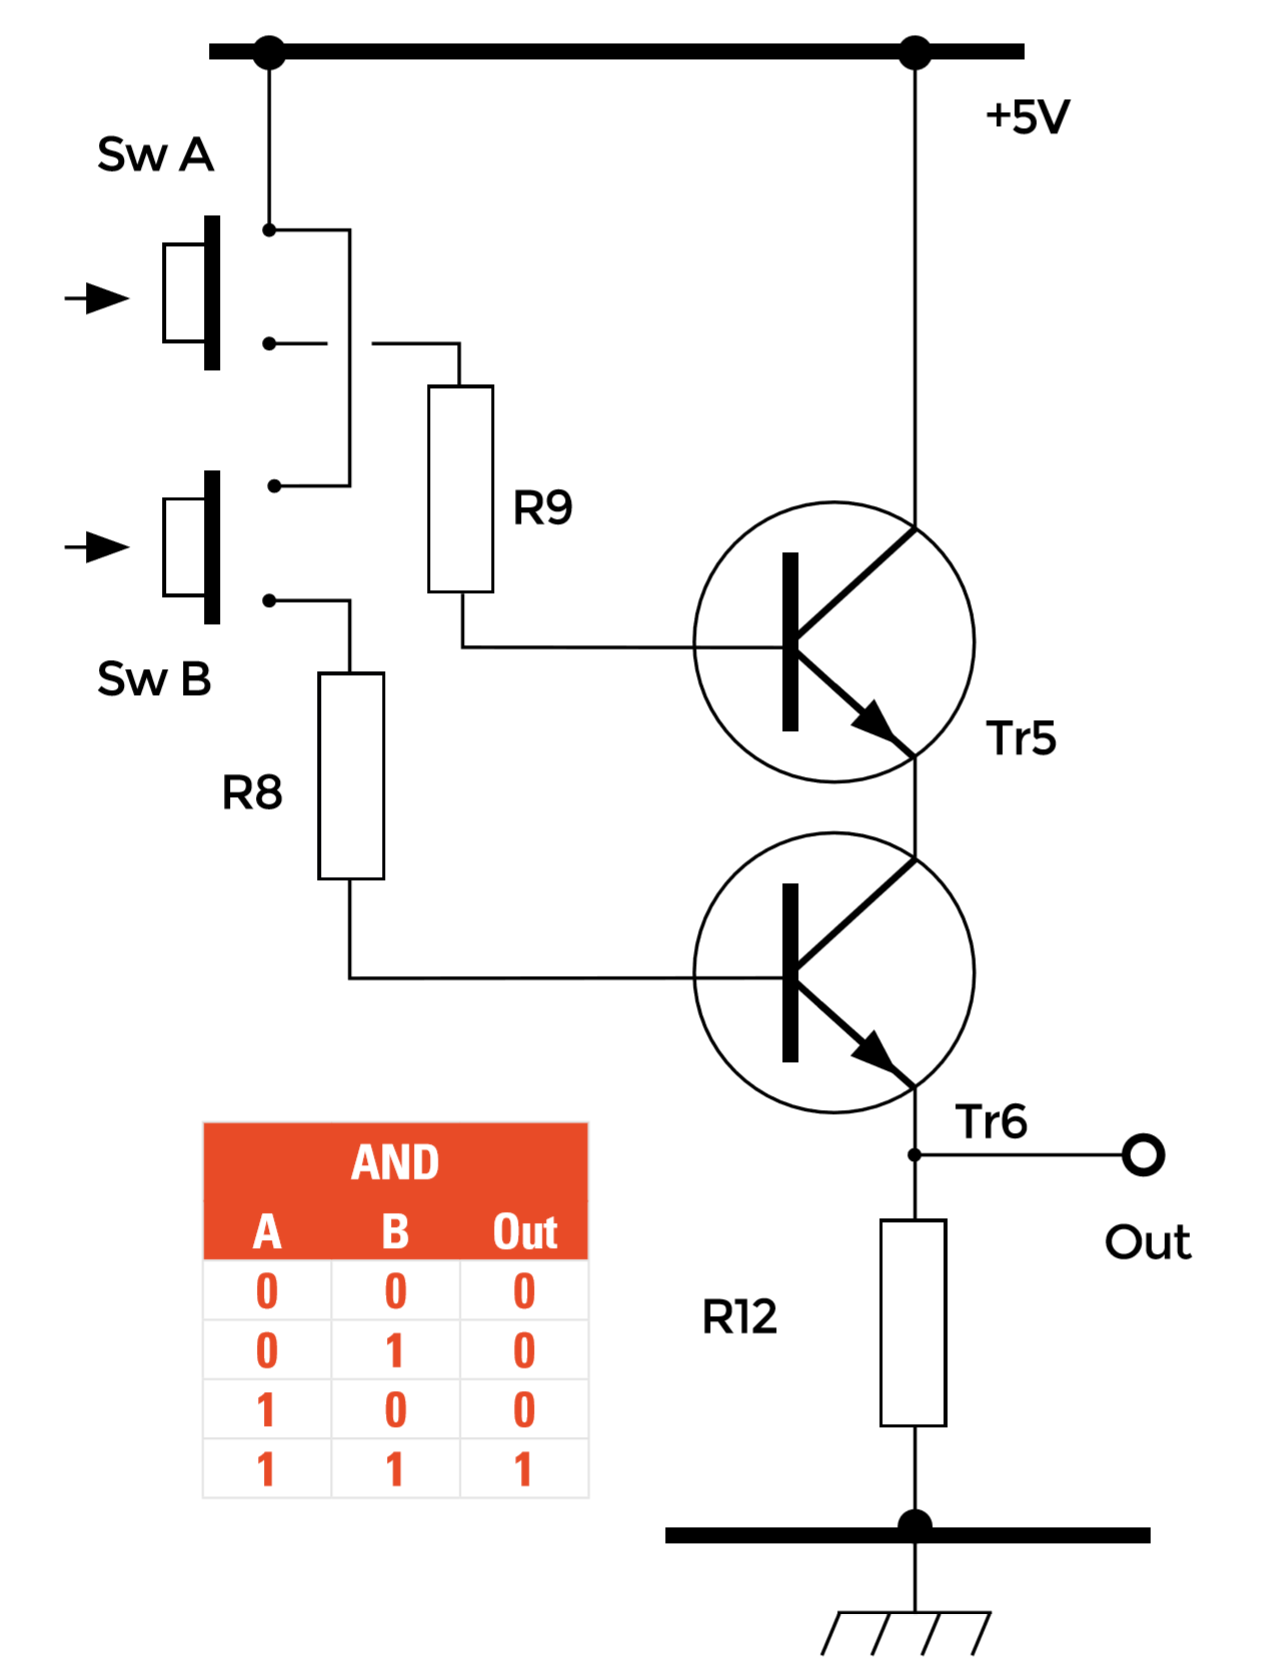 Logic Diagram Half Adder Wiring Library Sketch A Block Showing How Full Adders Can Cheggcom Notice In This Circuit That The Two Transistors Tr5 And Tr6 Are Effectively Connected Series